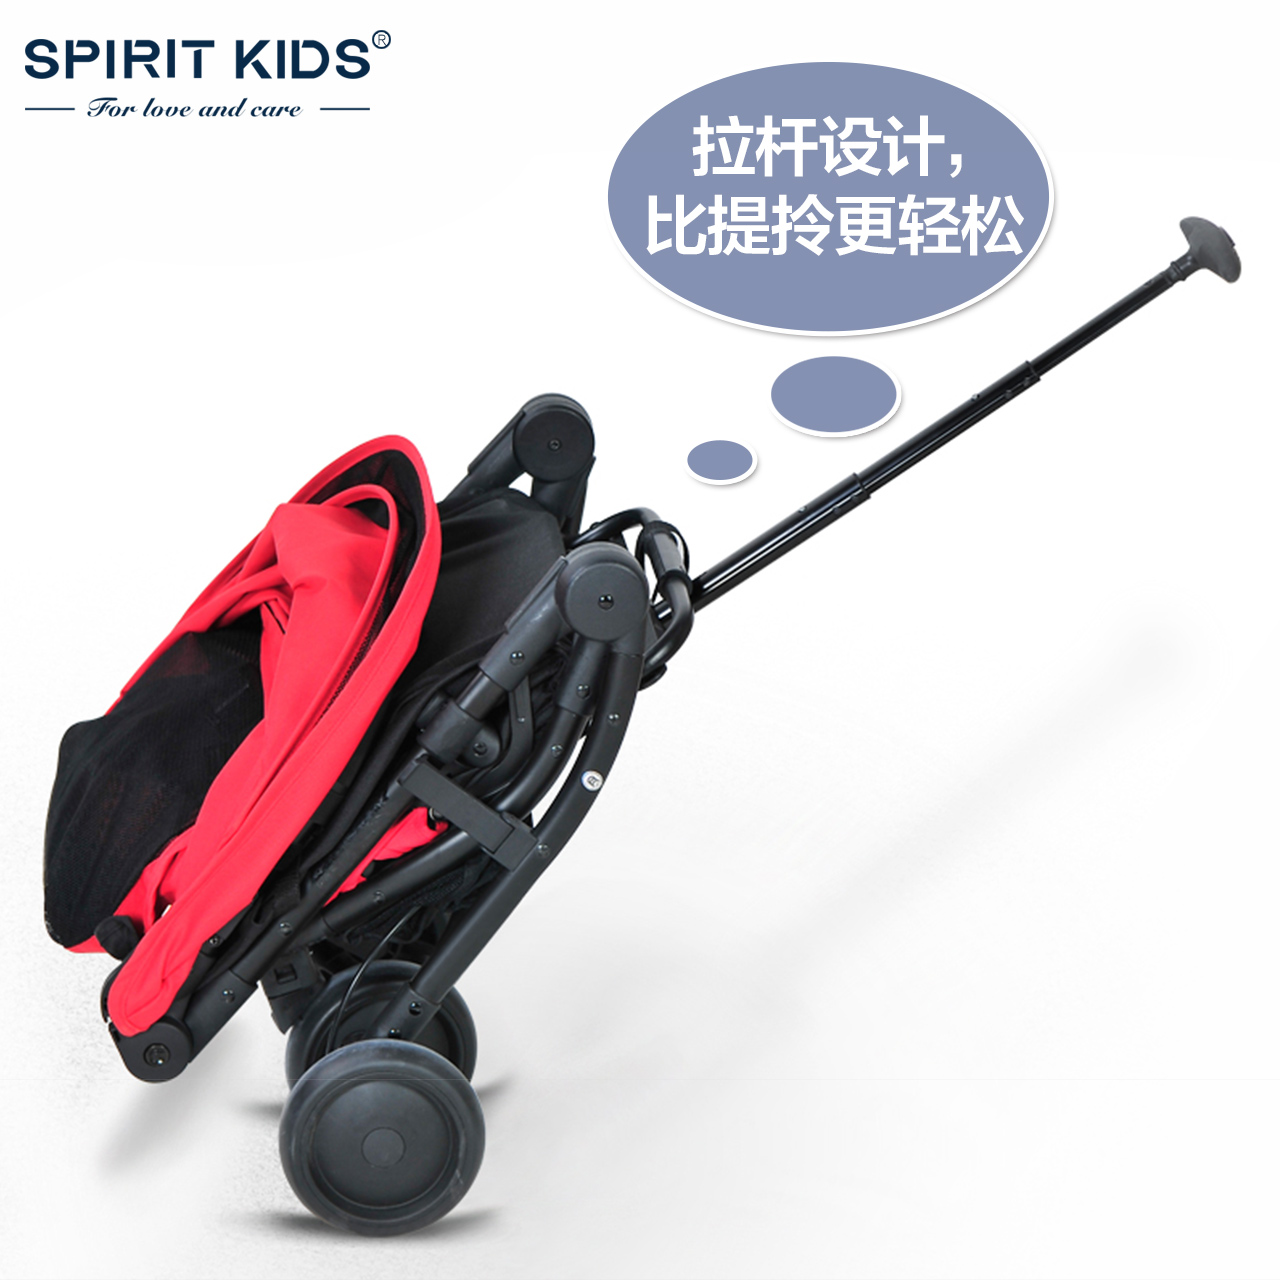 Smart Light Children Umbrella Cart, Portable Baby Travel Car, Folding Baby Stroller Baby Trolley design, 4 Wheel, Can Sit & Lie baby stroller ultra light portable folding cart shock absorbers car umbrella bb baby child small baby car